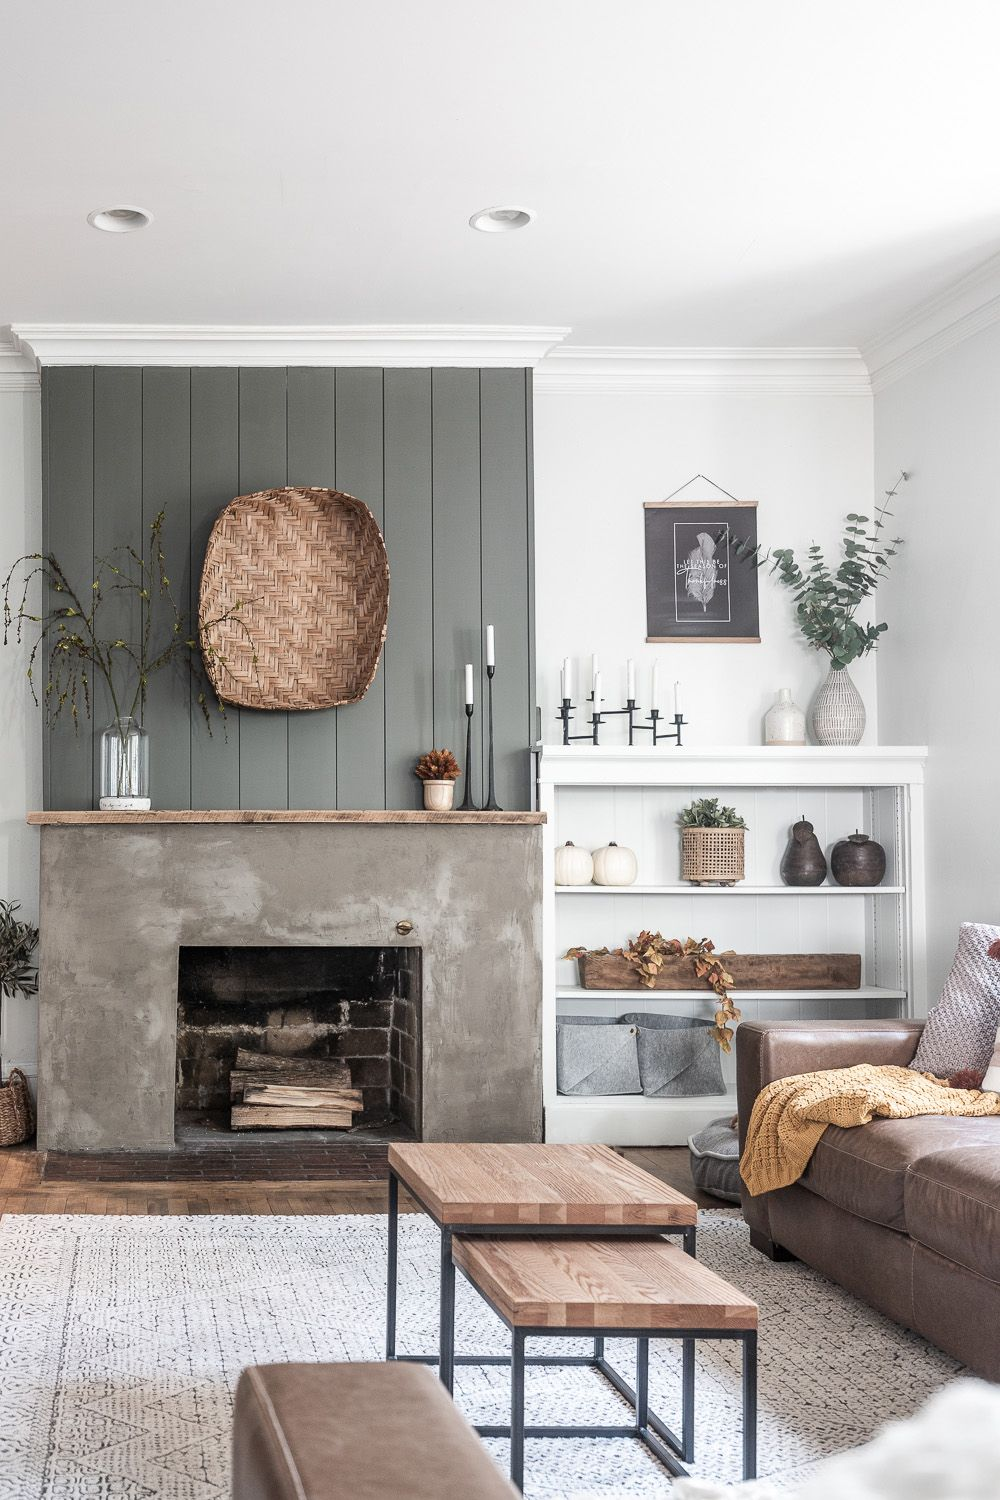 Modern Traditional Fall Decor in the Living Room - Cherished Bliss